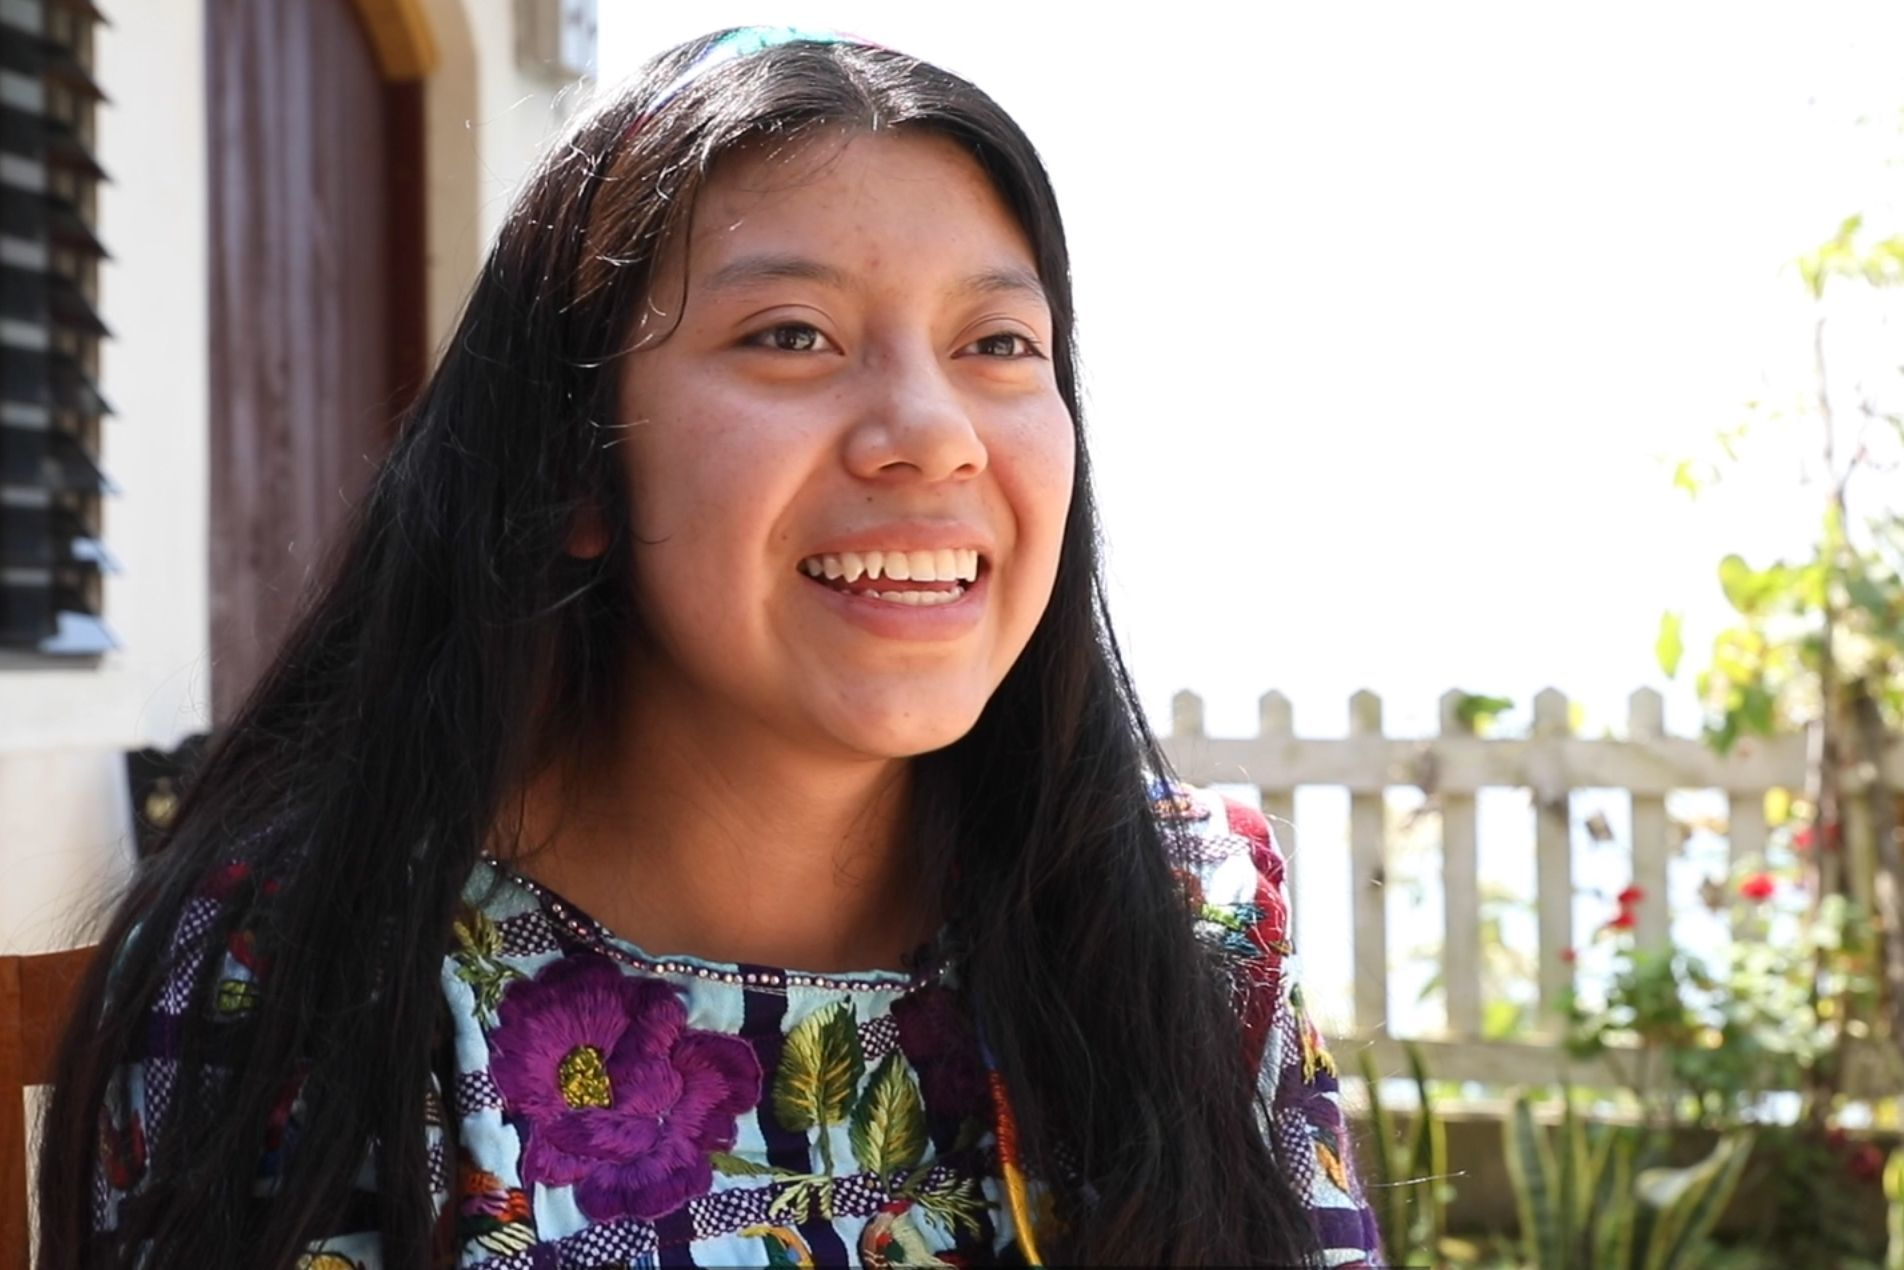 A scholarship student shares her story.